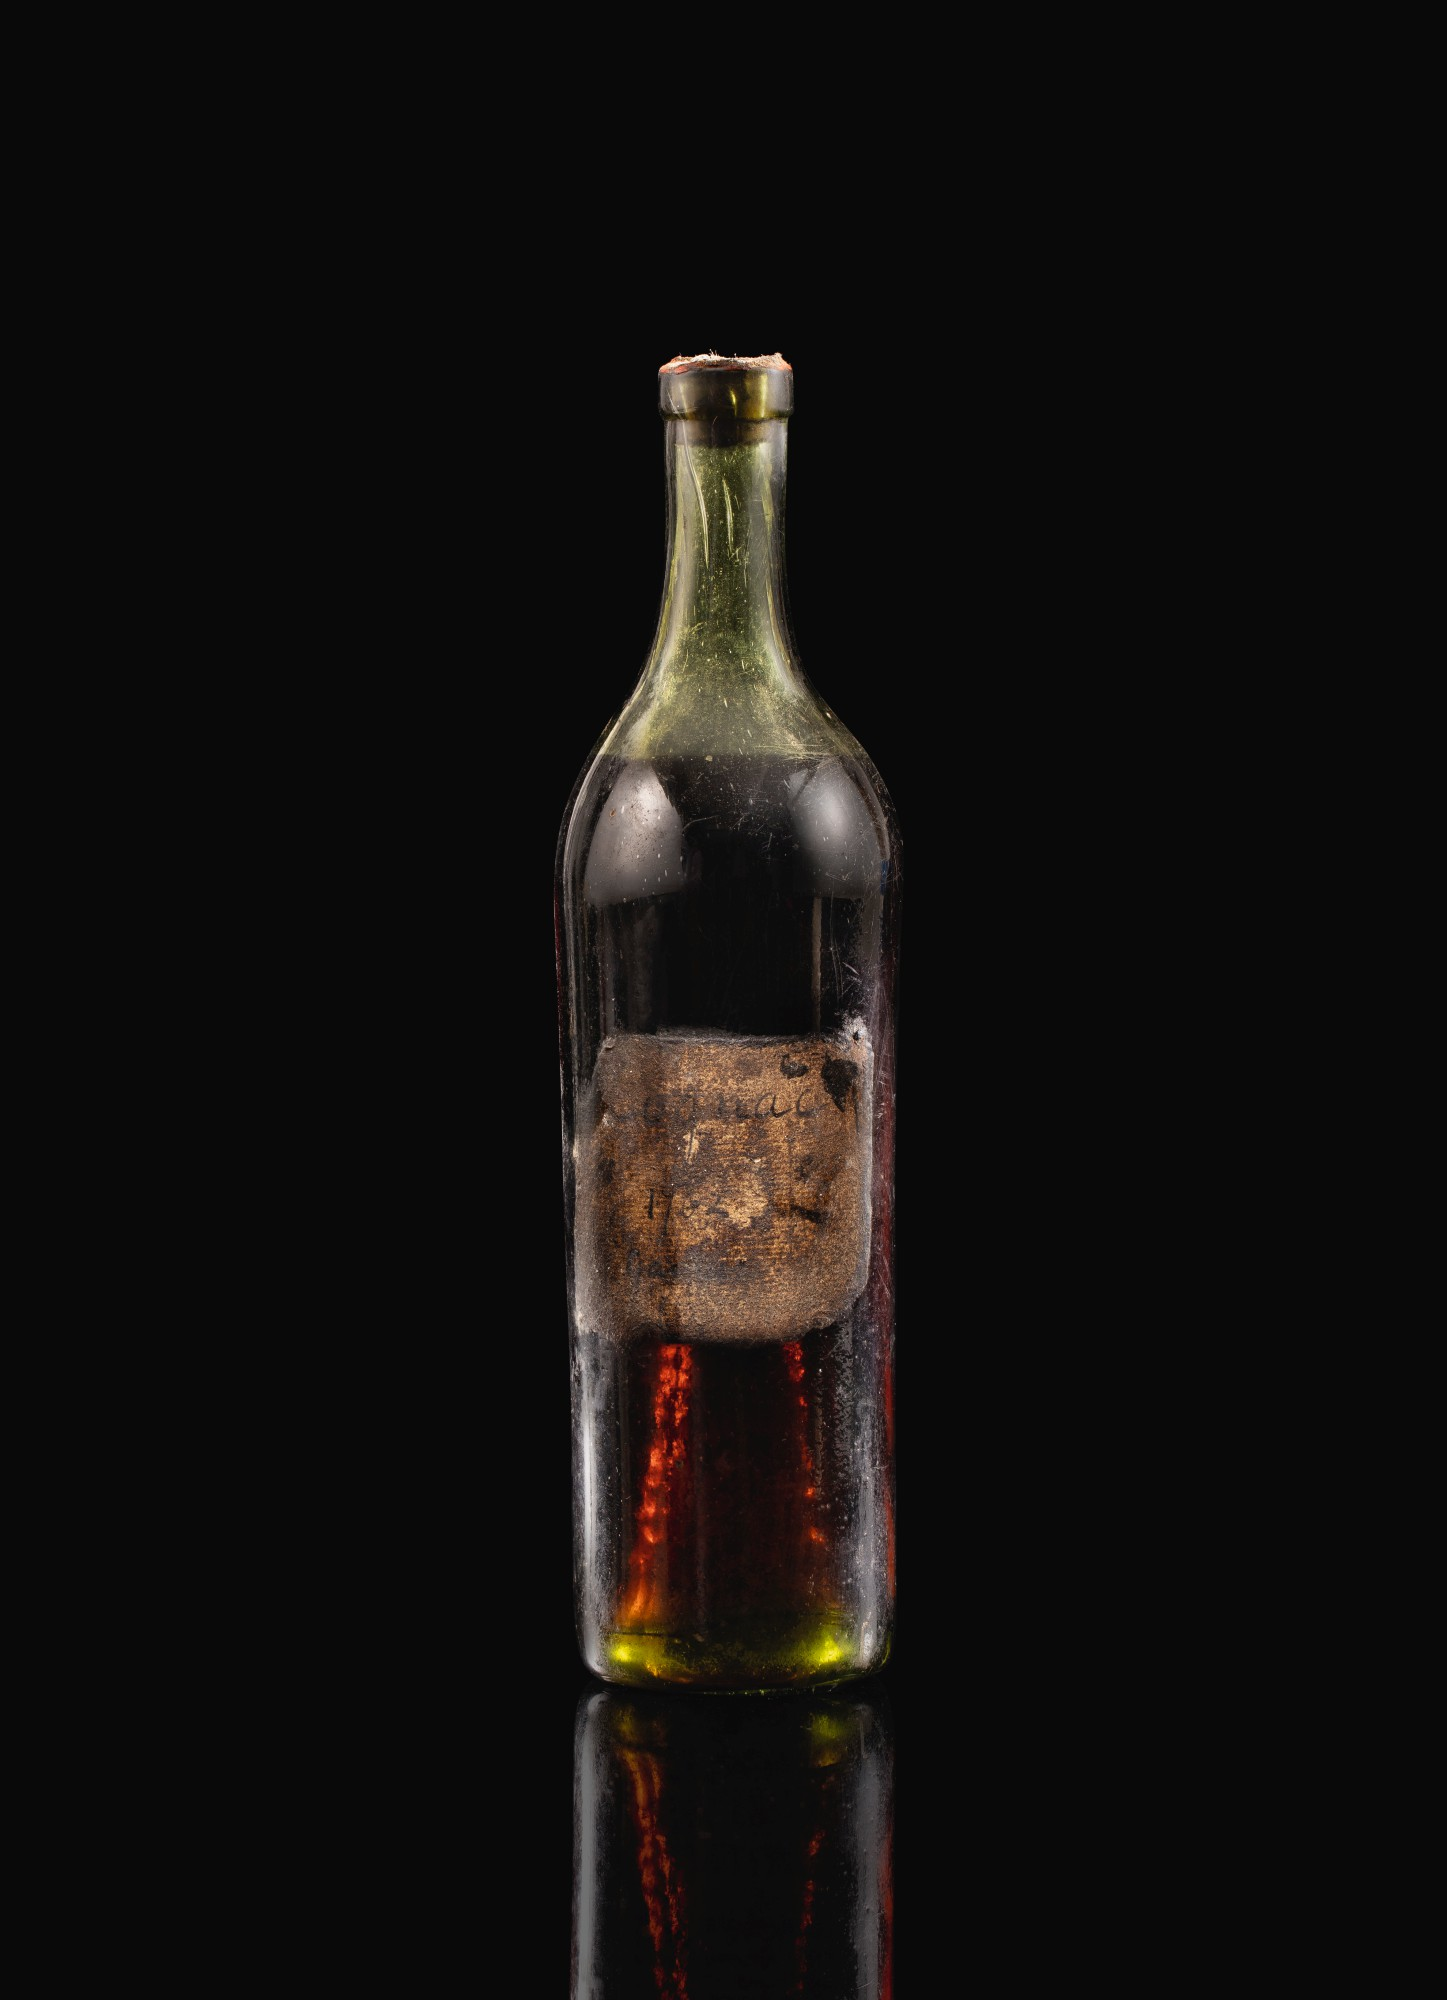 Sotheby's – Gautier Cognac 1762 Set a New Record for the Most Expensive Cognac Sold at Auction